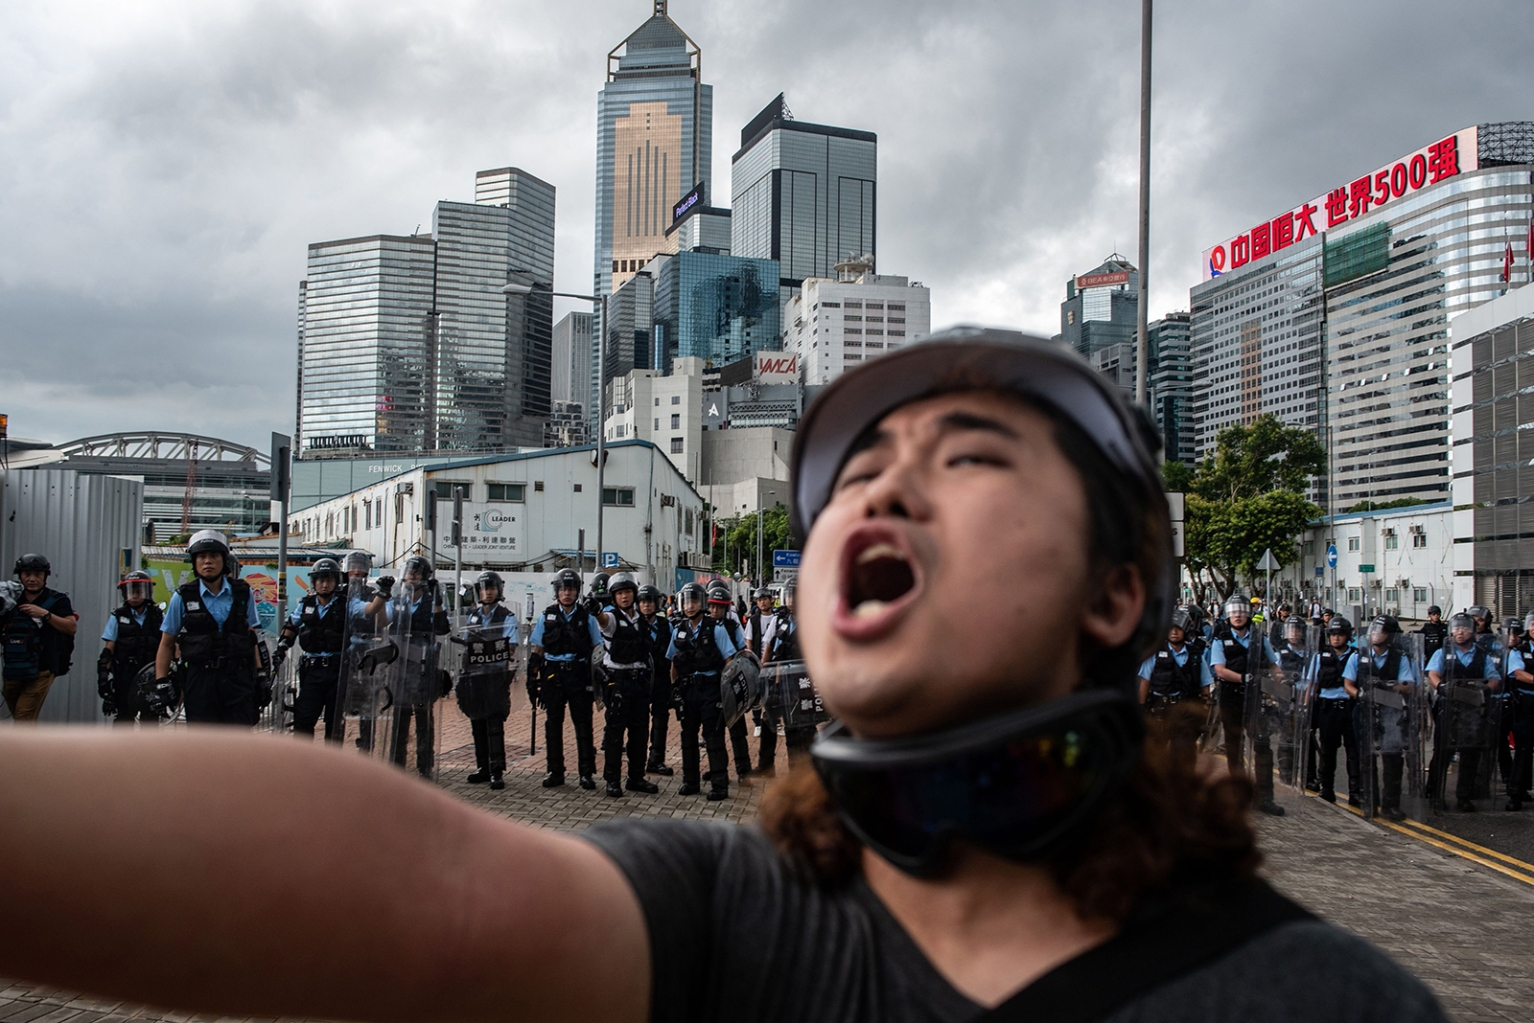 A protester shouts in front of police outside the government headquarters after the annual flag-raising ceremony to mark the 22nd anniversary of the city's handover from Britain to China in Hong Kong on July 1. PHILIP FONG/AFP/Getty Images